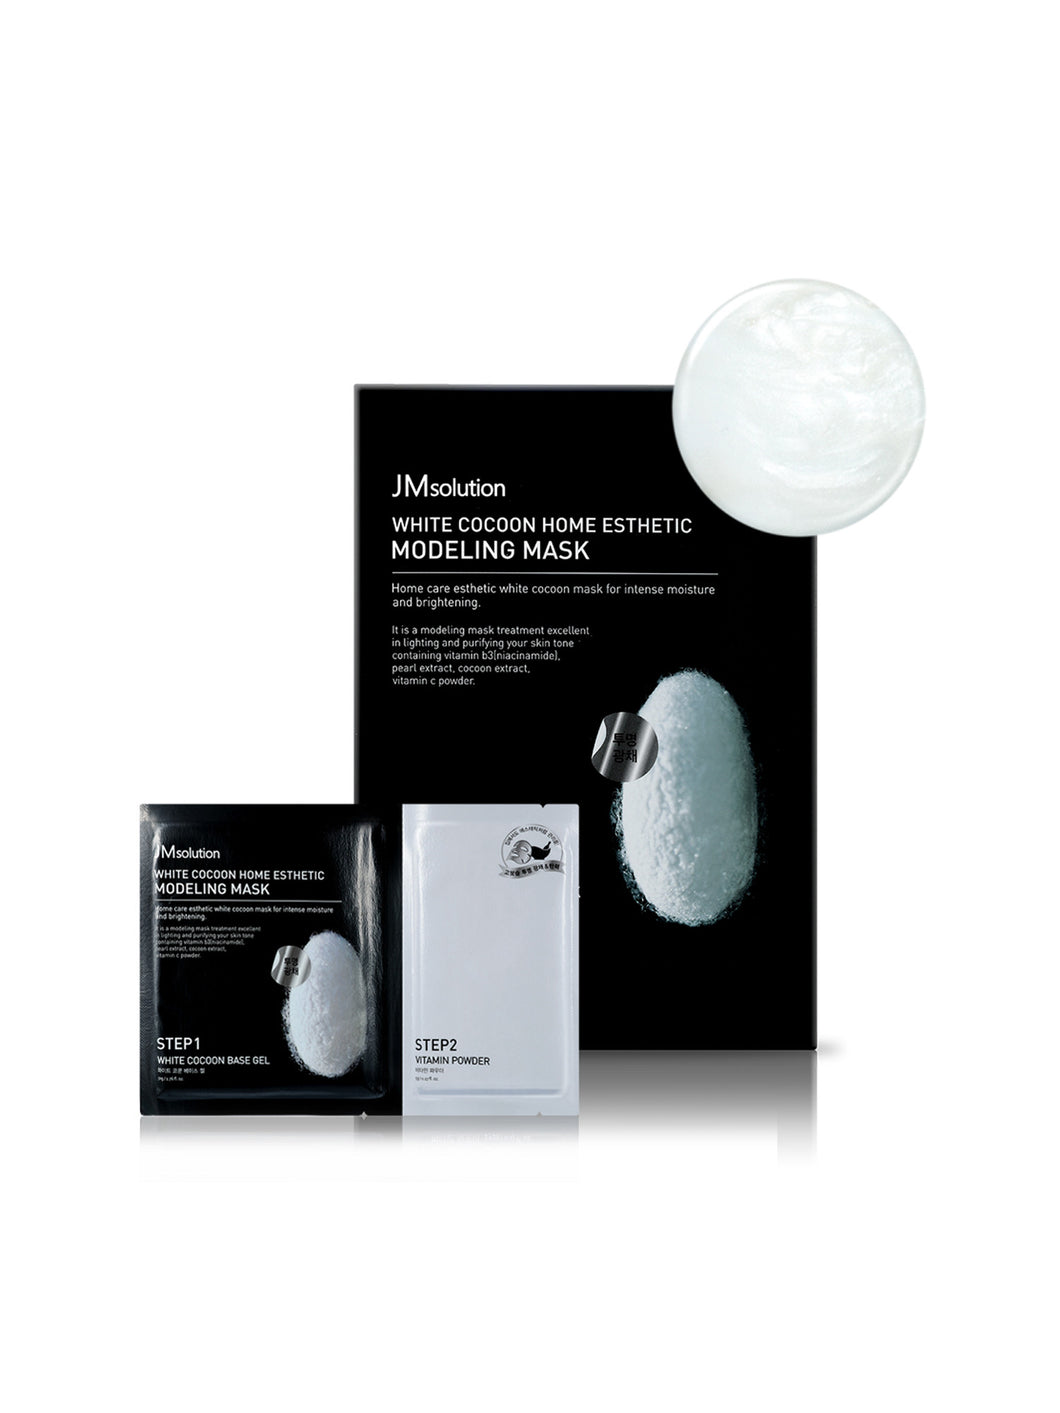 WHITE COCOON HOME ESTHETIC MODELING MASK